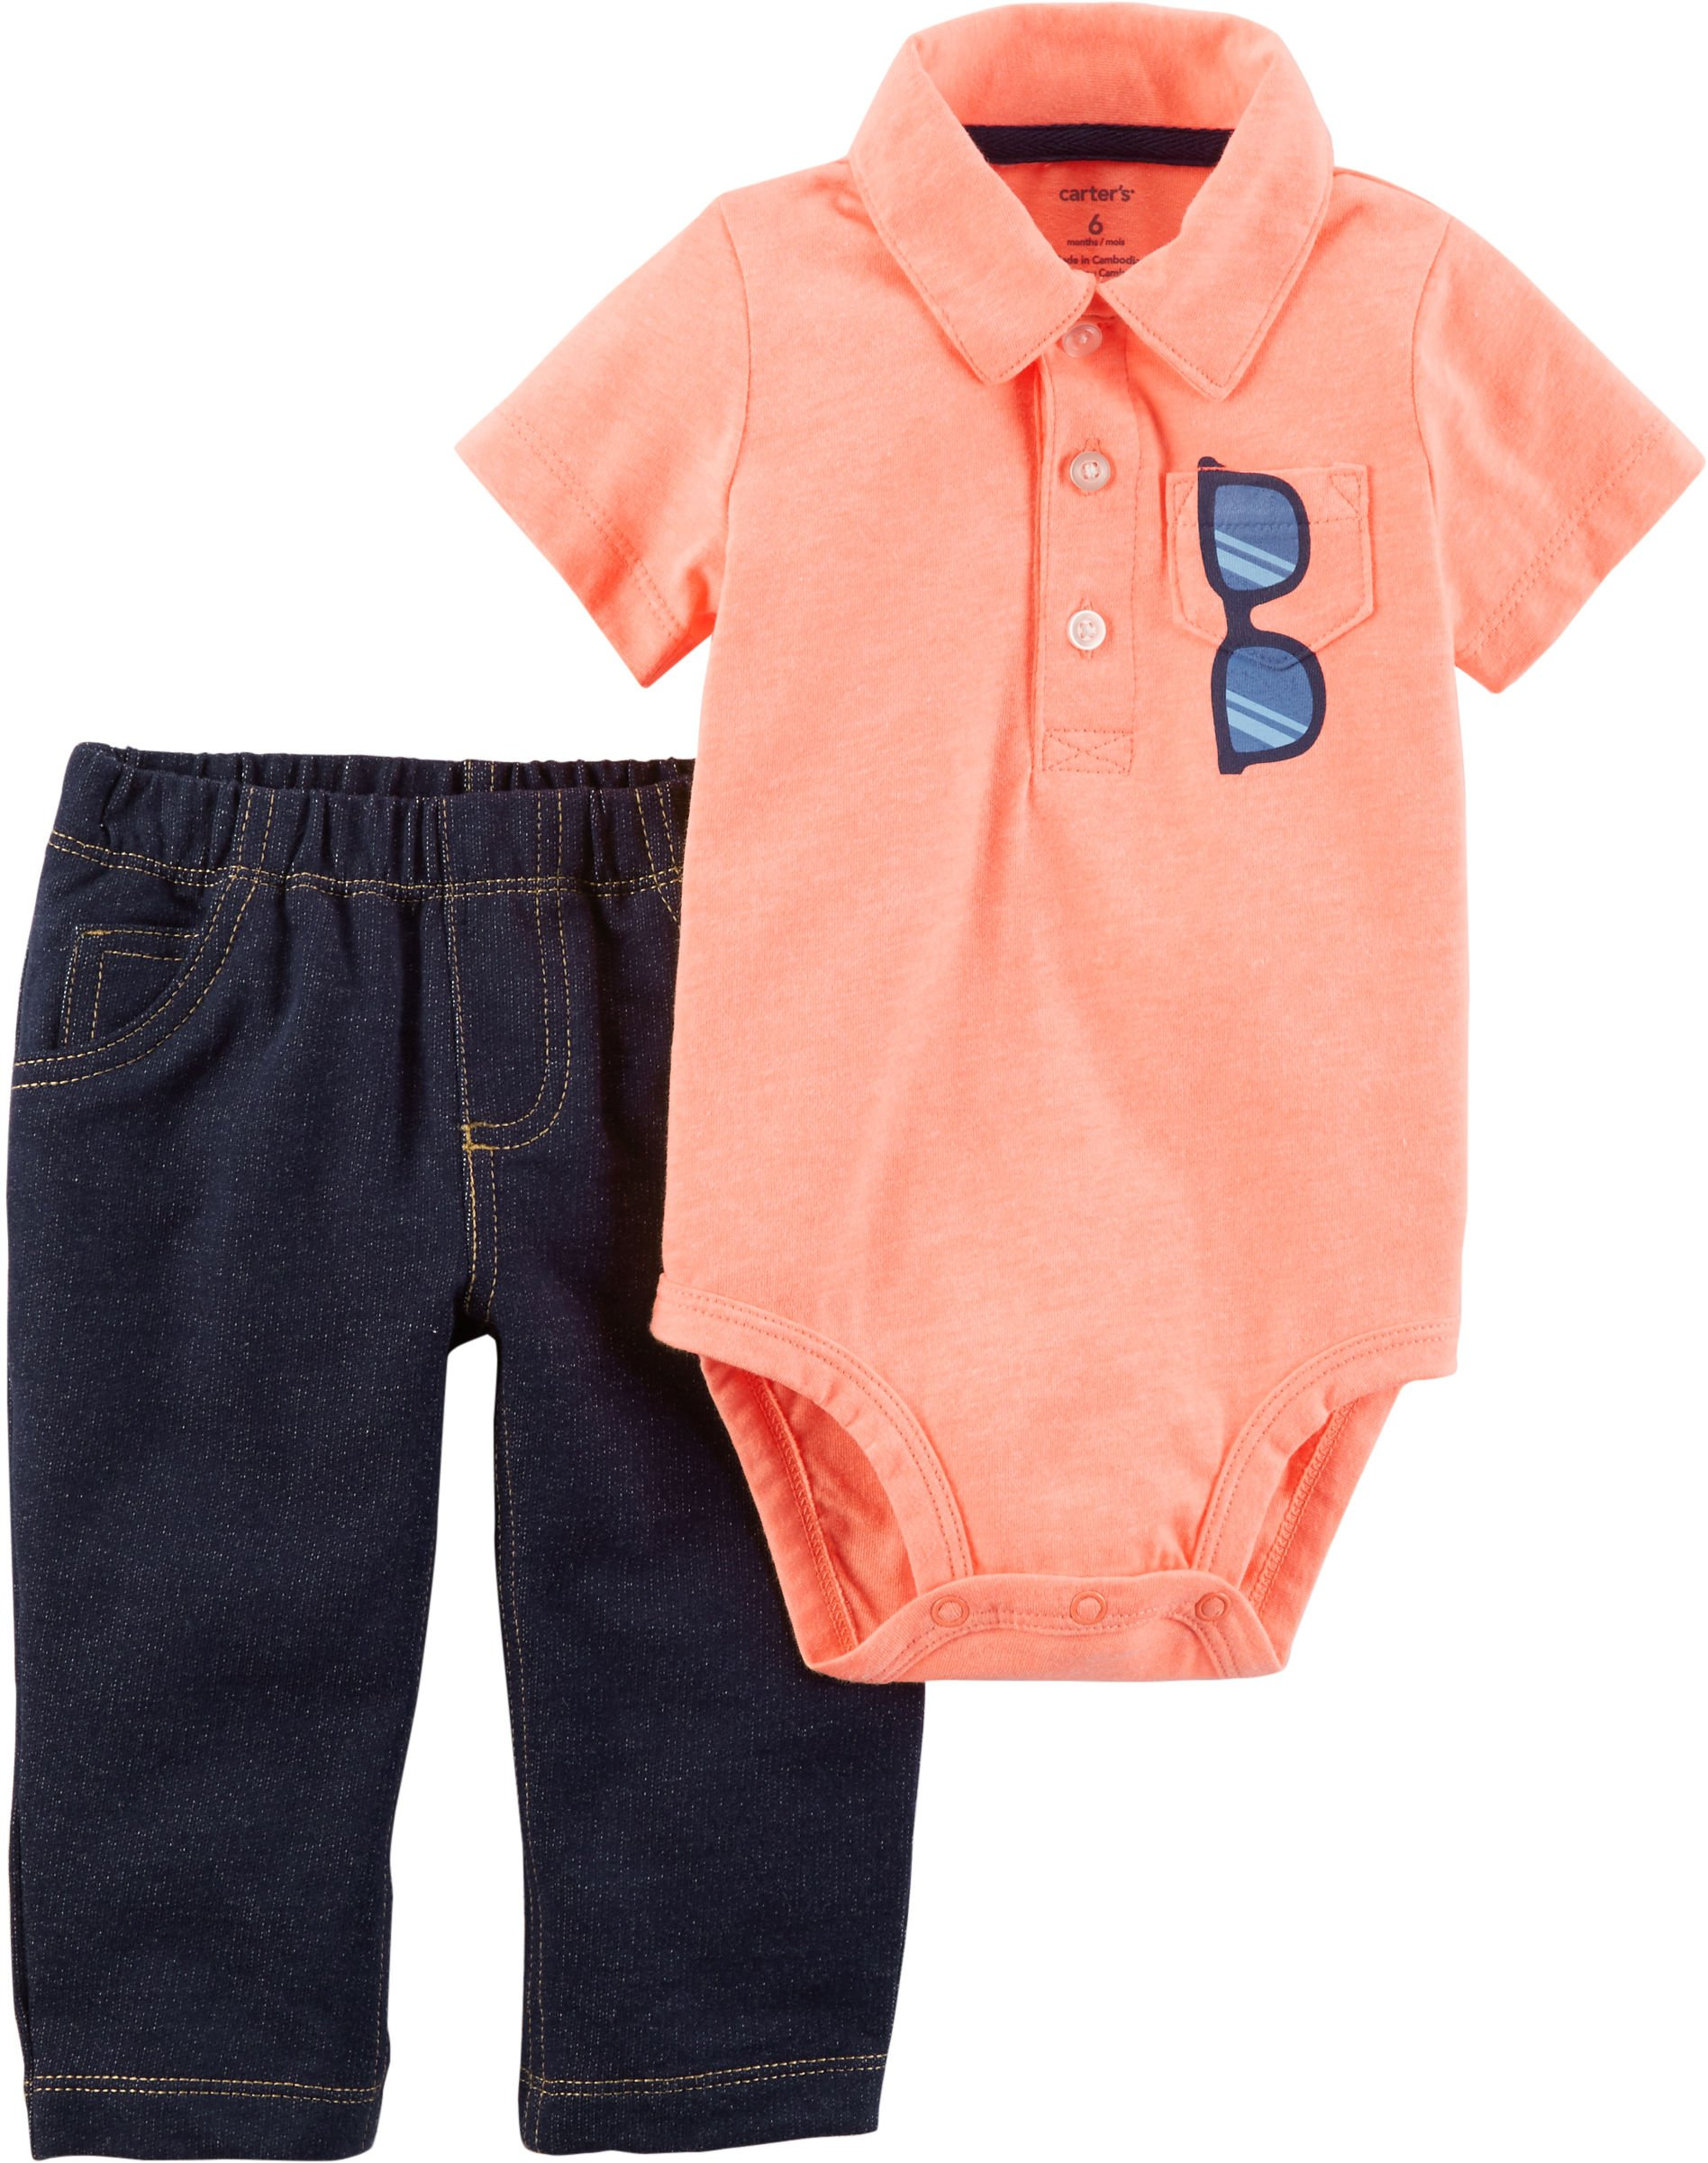 Carter's Baby Boys' 2 Piece Neon Sunglass Bodysuit and Pants Set 18 Months by Carter's